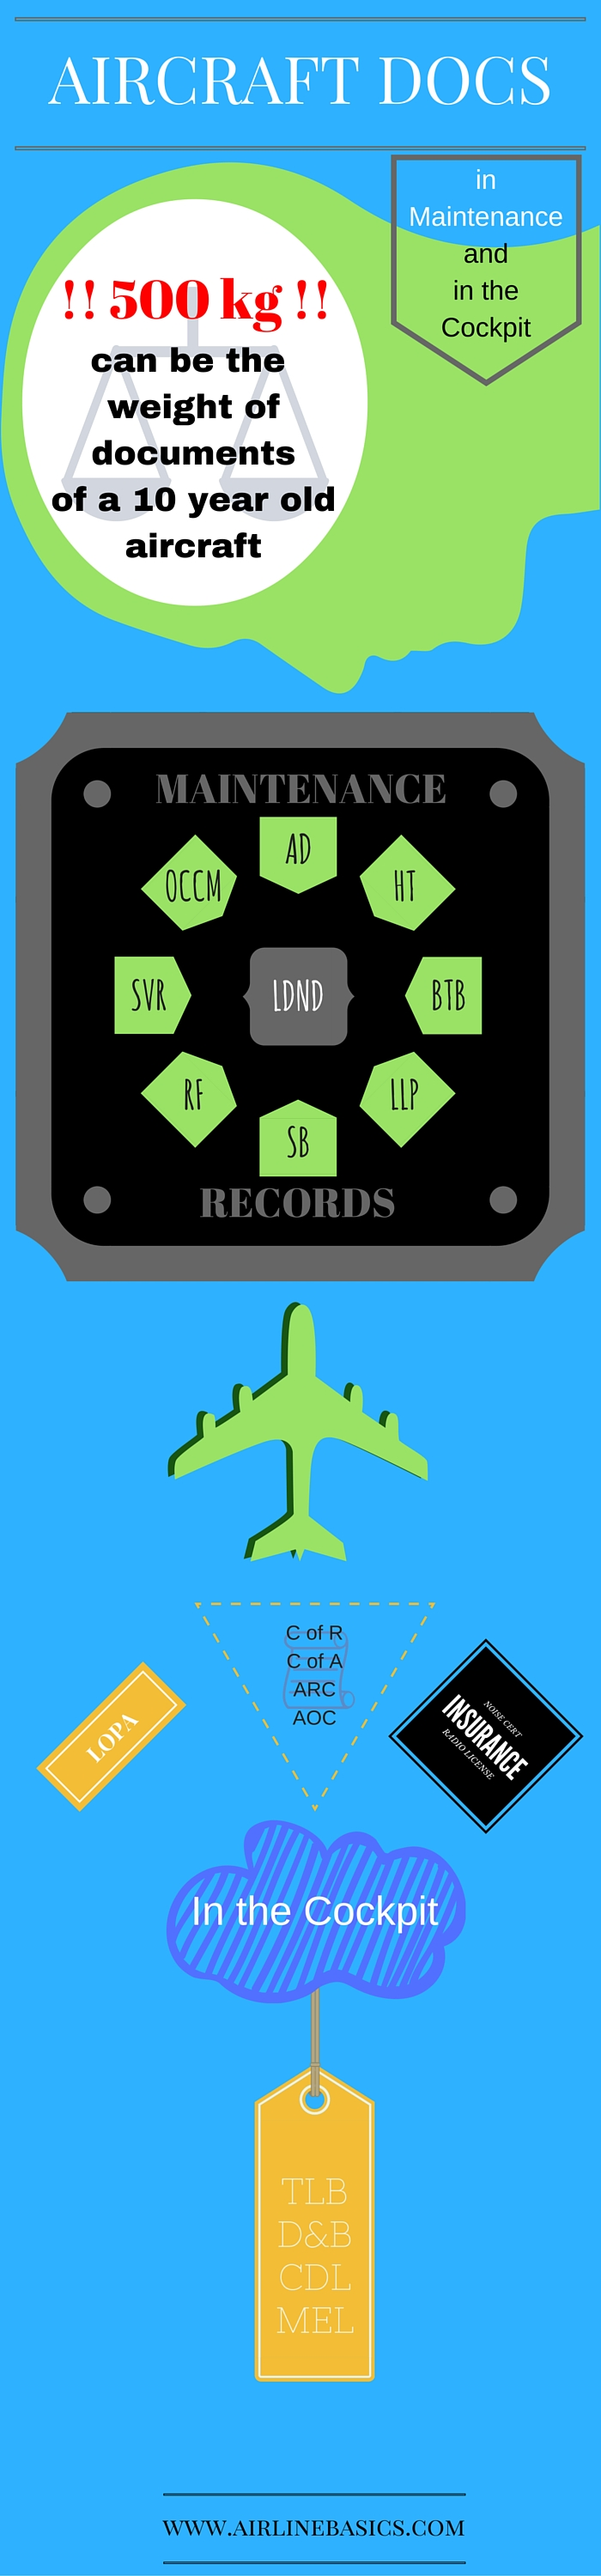 AIRCRAFT DOCS Aircraft Documents INFOGRAPHIC